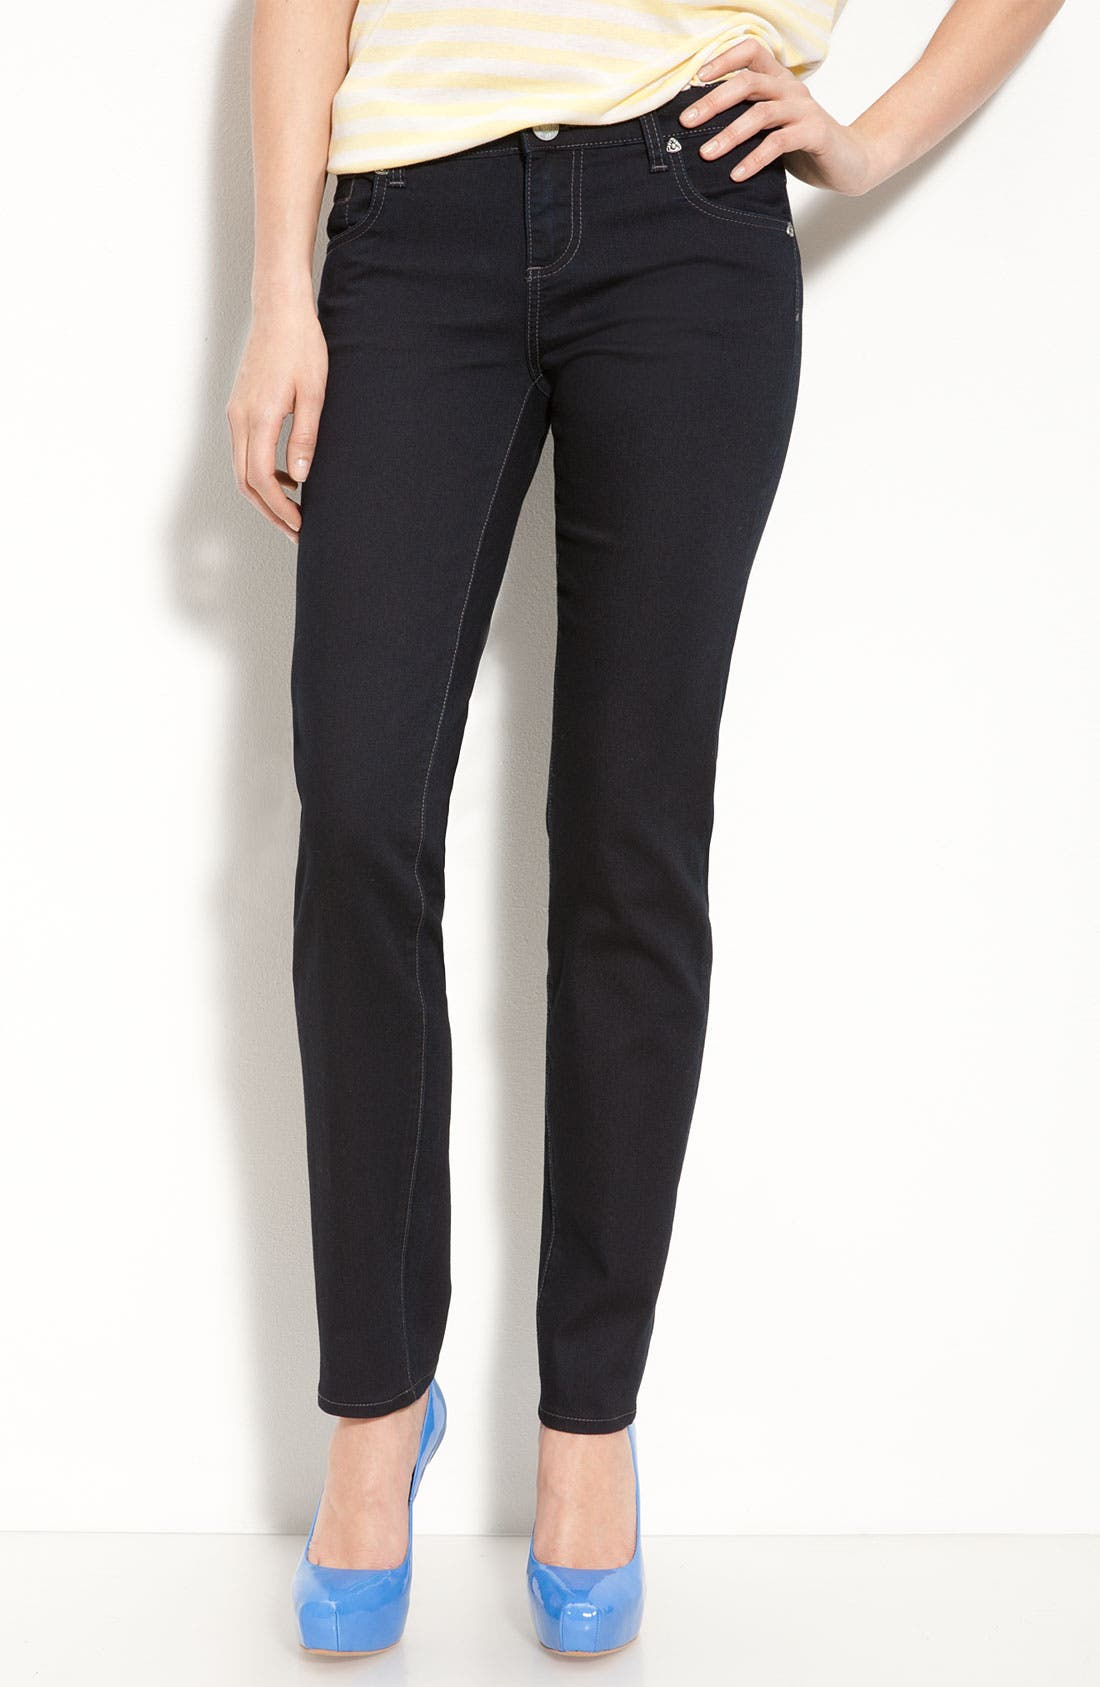 KUT FROM THE KLOTH, 'Diana' Skinny Jeans, Main thumbnail 1, color, 400